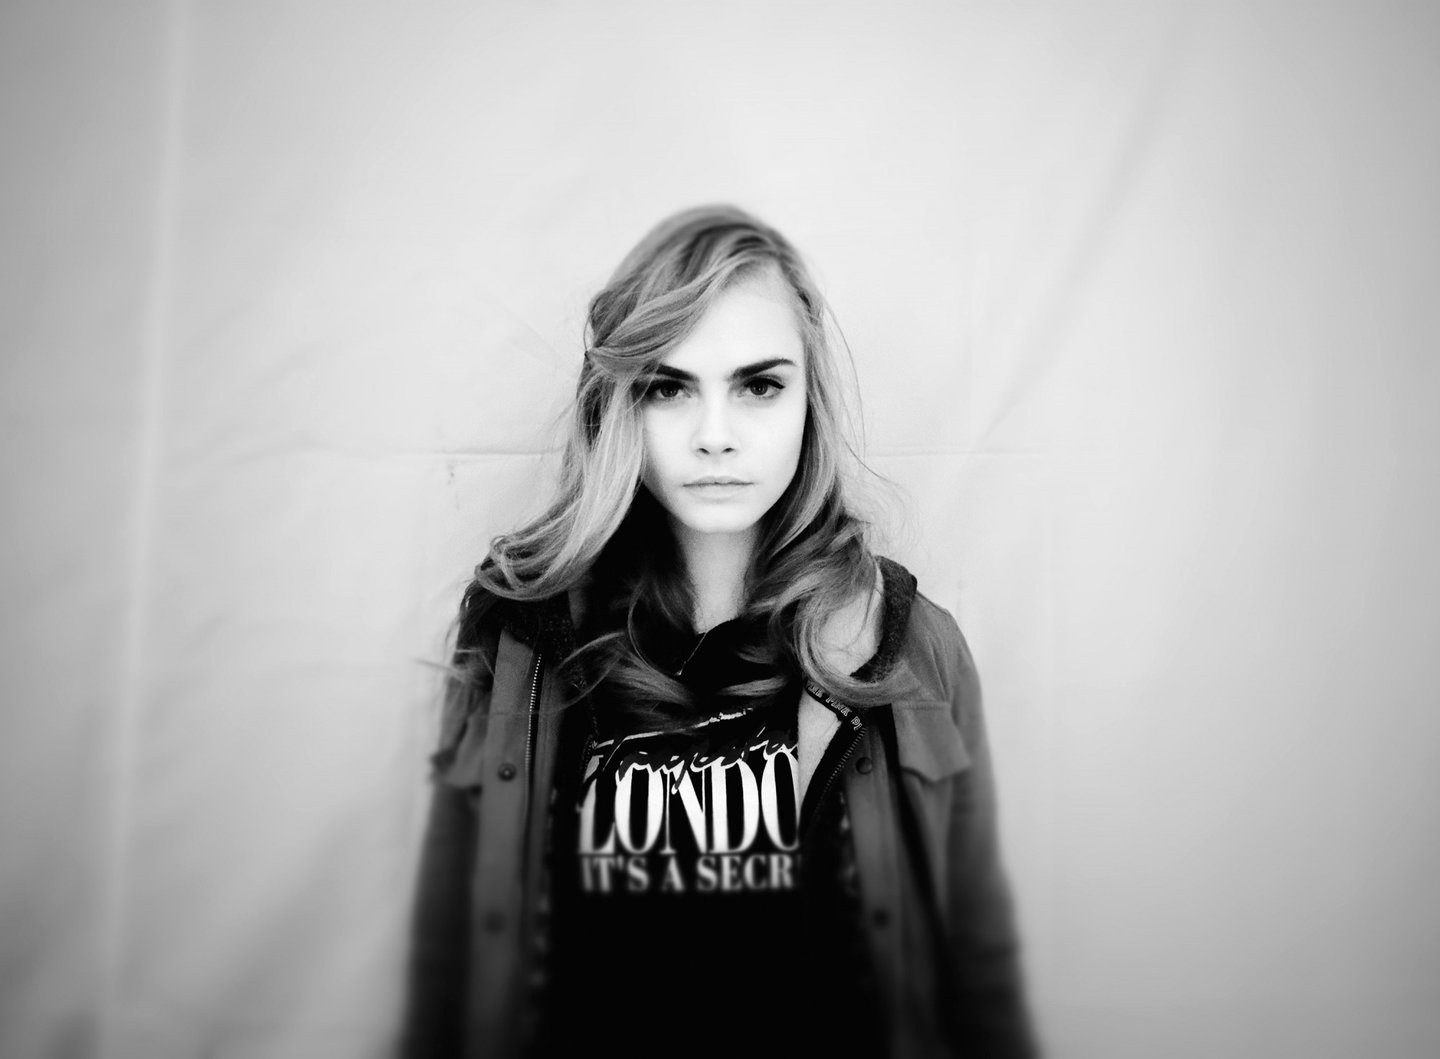 PARIS, FRANCE - FEBRUARY 27:  (Editors Note: This image was processed using digital filters) Model Cara Delevingne poses backstage before the H&M Fall/Winter 2013 Ready-to-Wear show as part of Paris Fashion Week on February 27, 2013 in Paris, France.  (Photo by Gareth Cattermole/Getty Images)